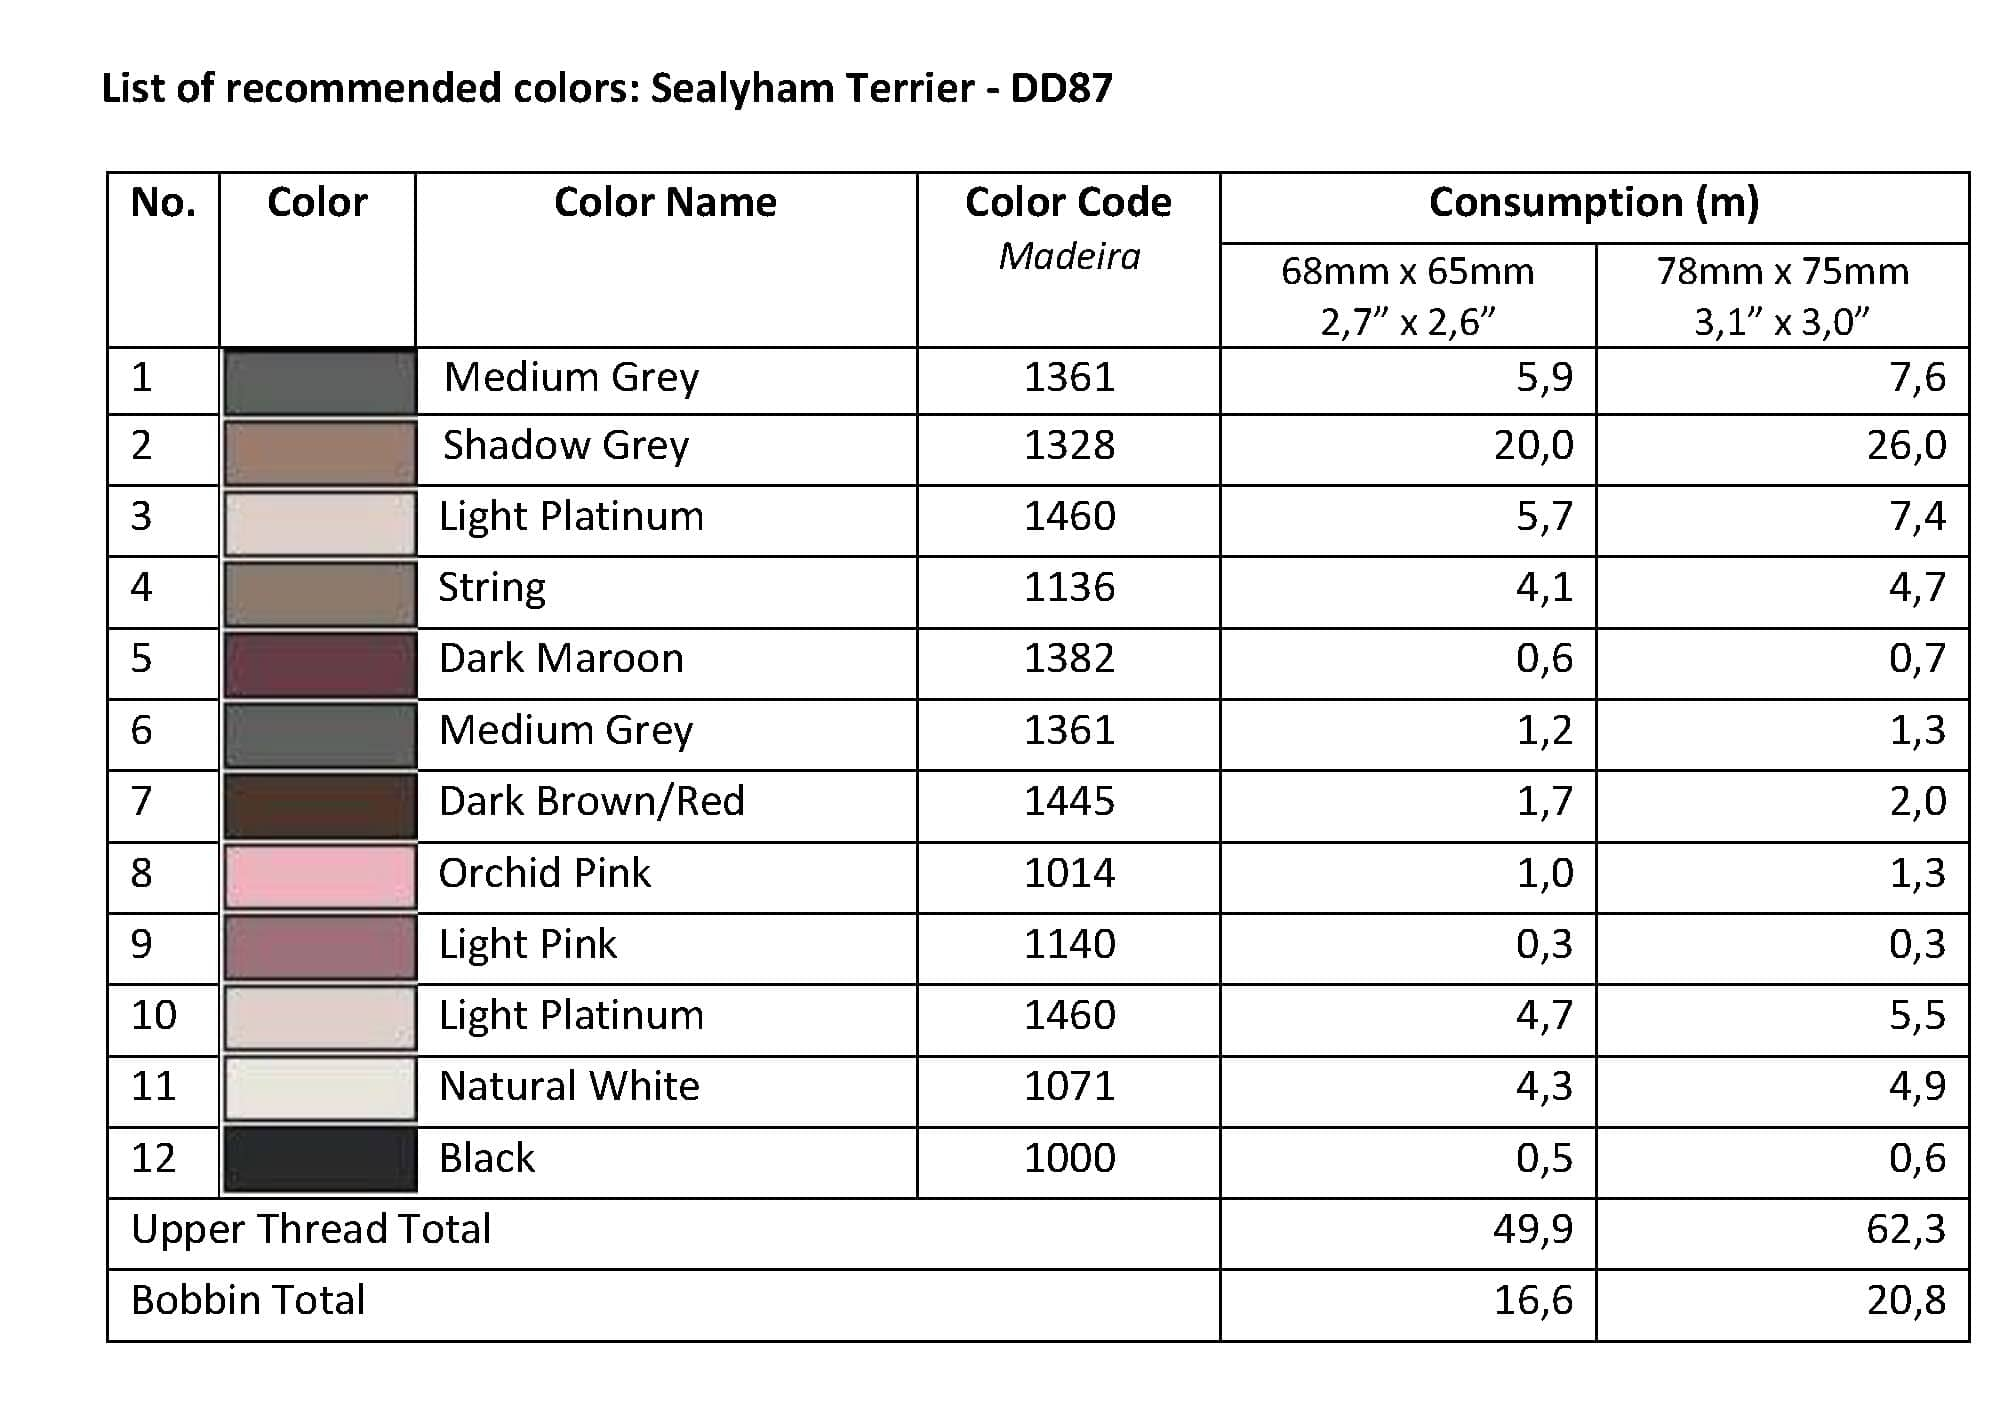 List of Recommended Colors -  Sealyham Terrier DD87